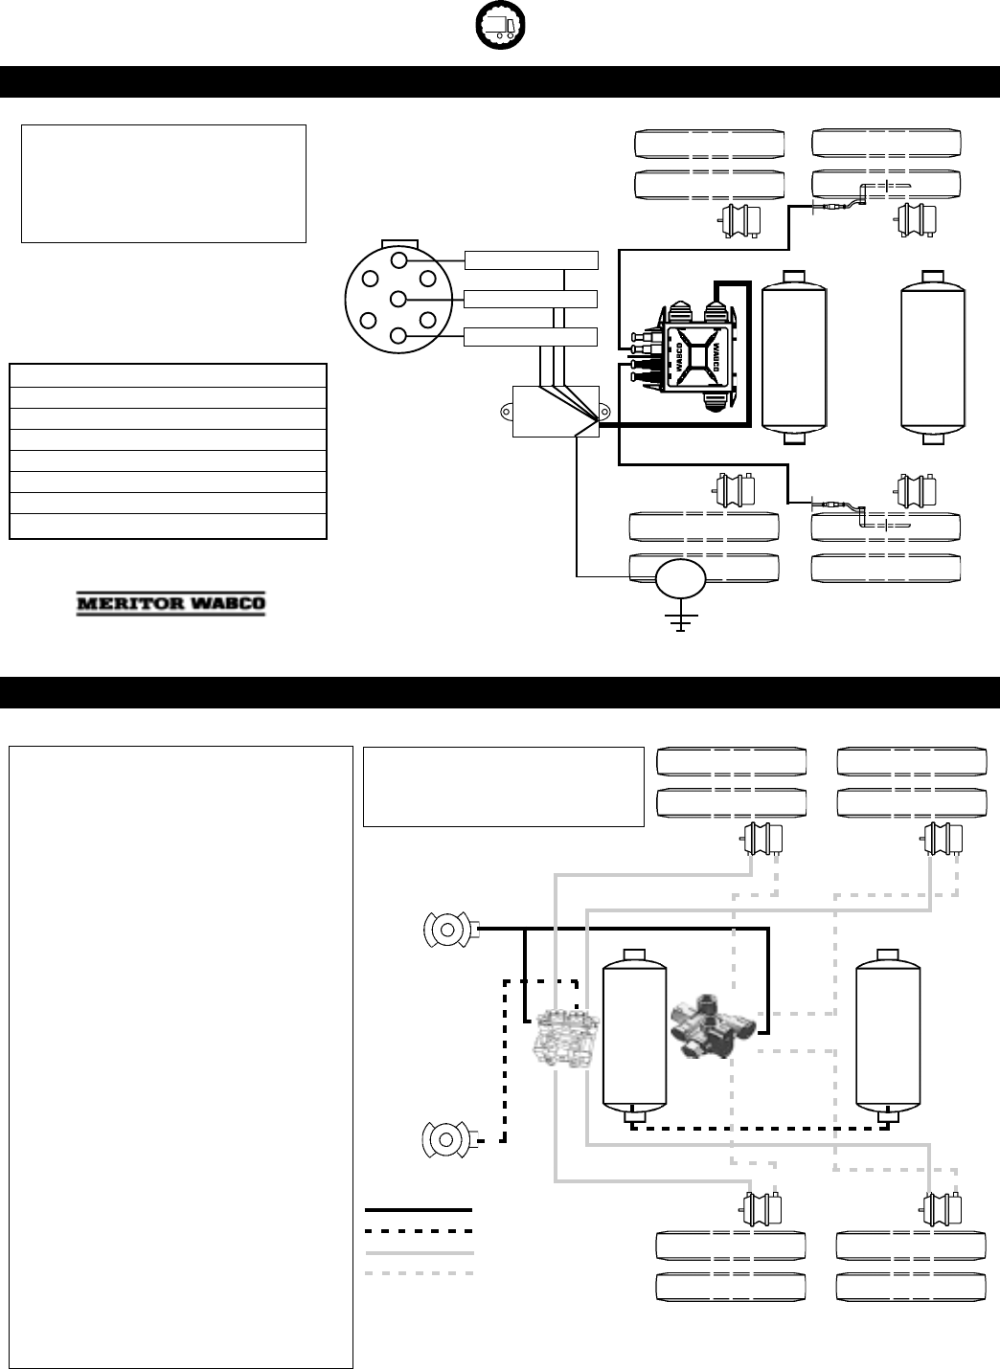 medium resolution of abs air valves dryers 285252 section1 rh usermanual wiki challenger wiring diagram wabco r955321 r955320 meritor